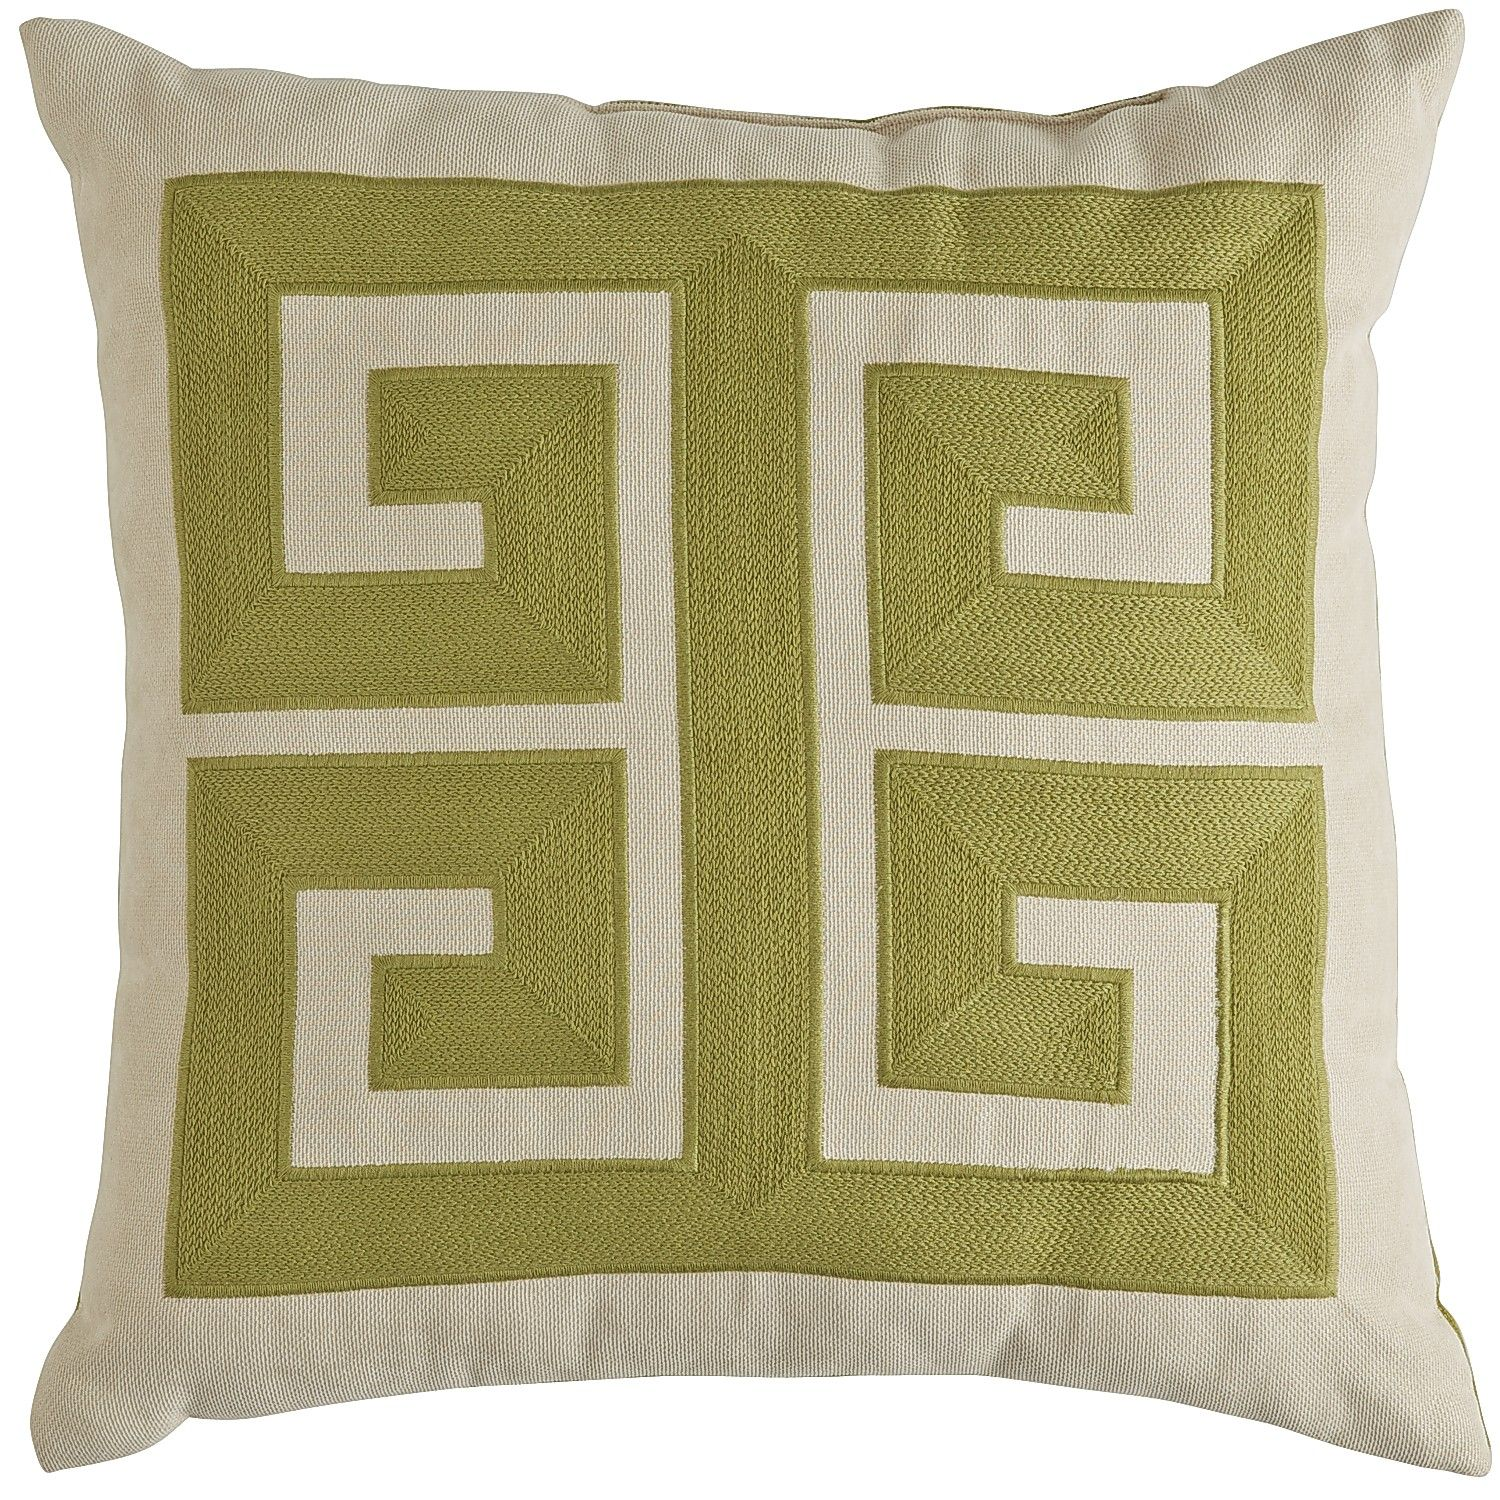 Accent Pillows Color Moss X Polyester Fabric Treated For UV Protection Spot Clean Only Indoor Outdoor Use